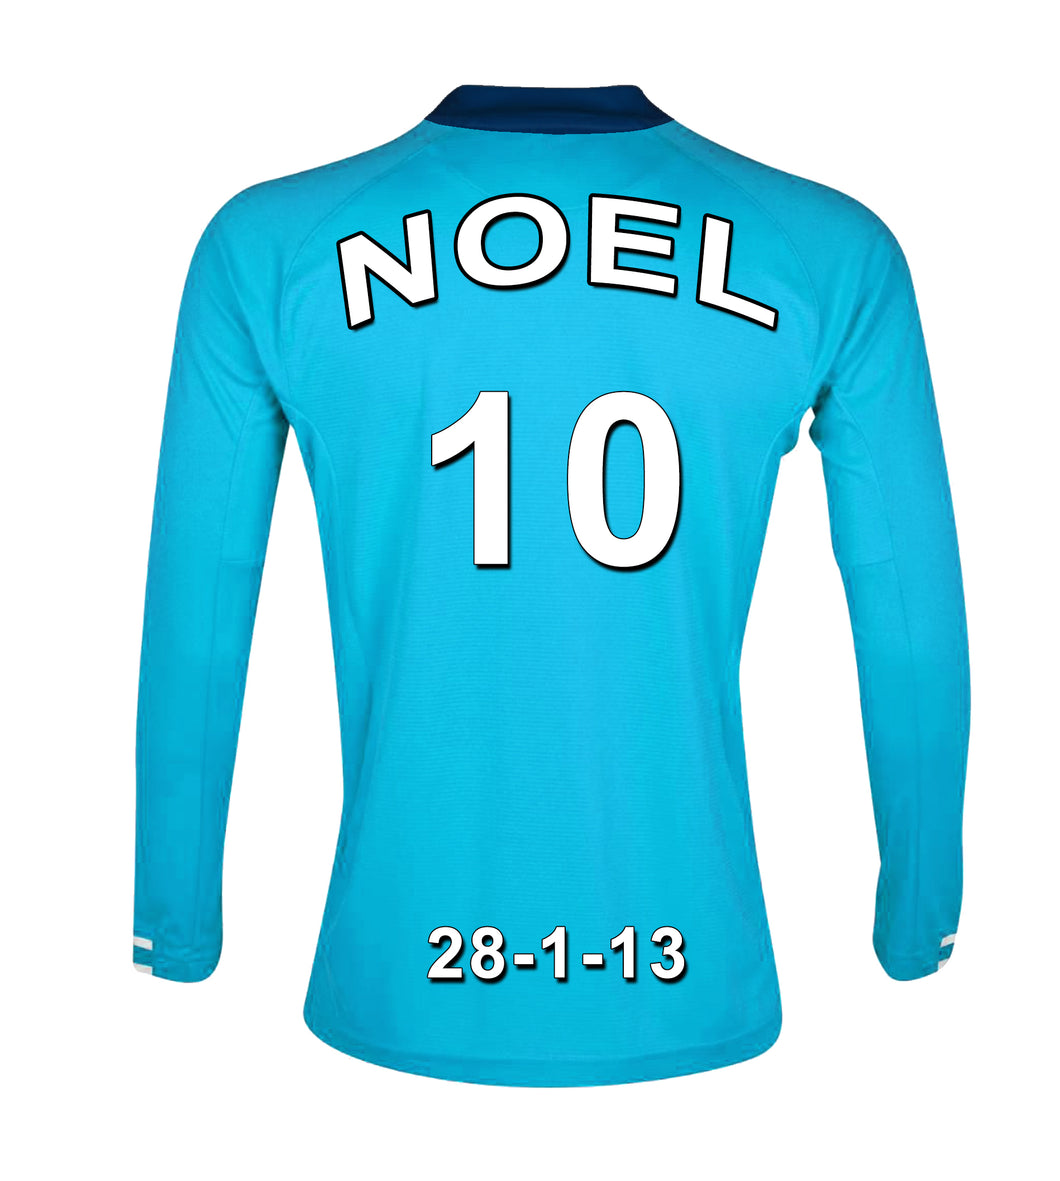 Manchester City Football Club blue personalised football shirt canvas